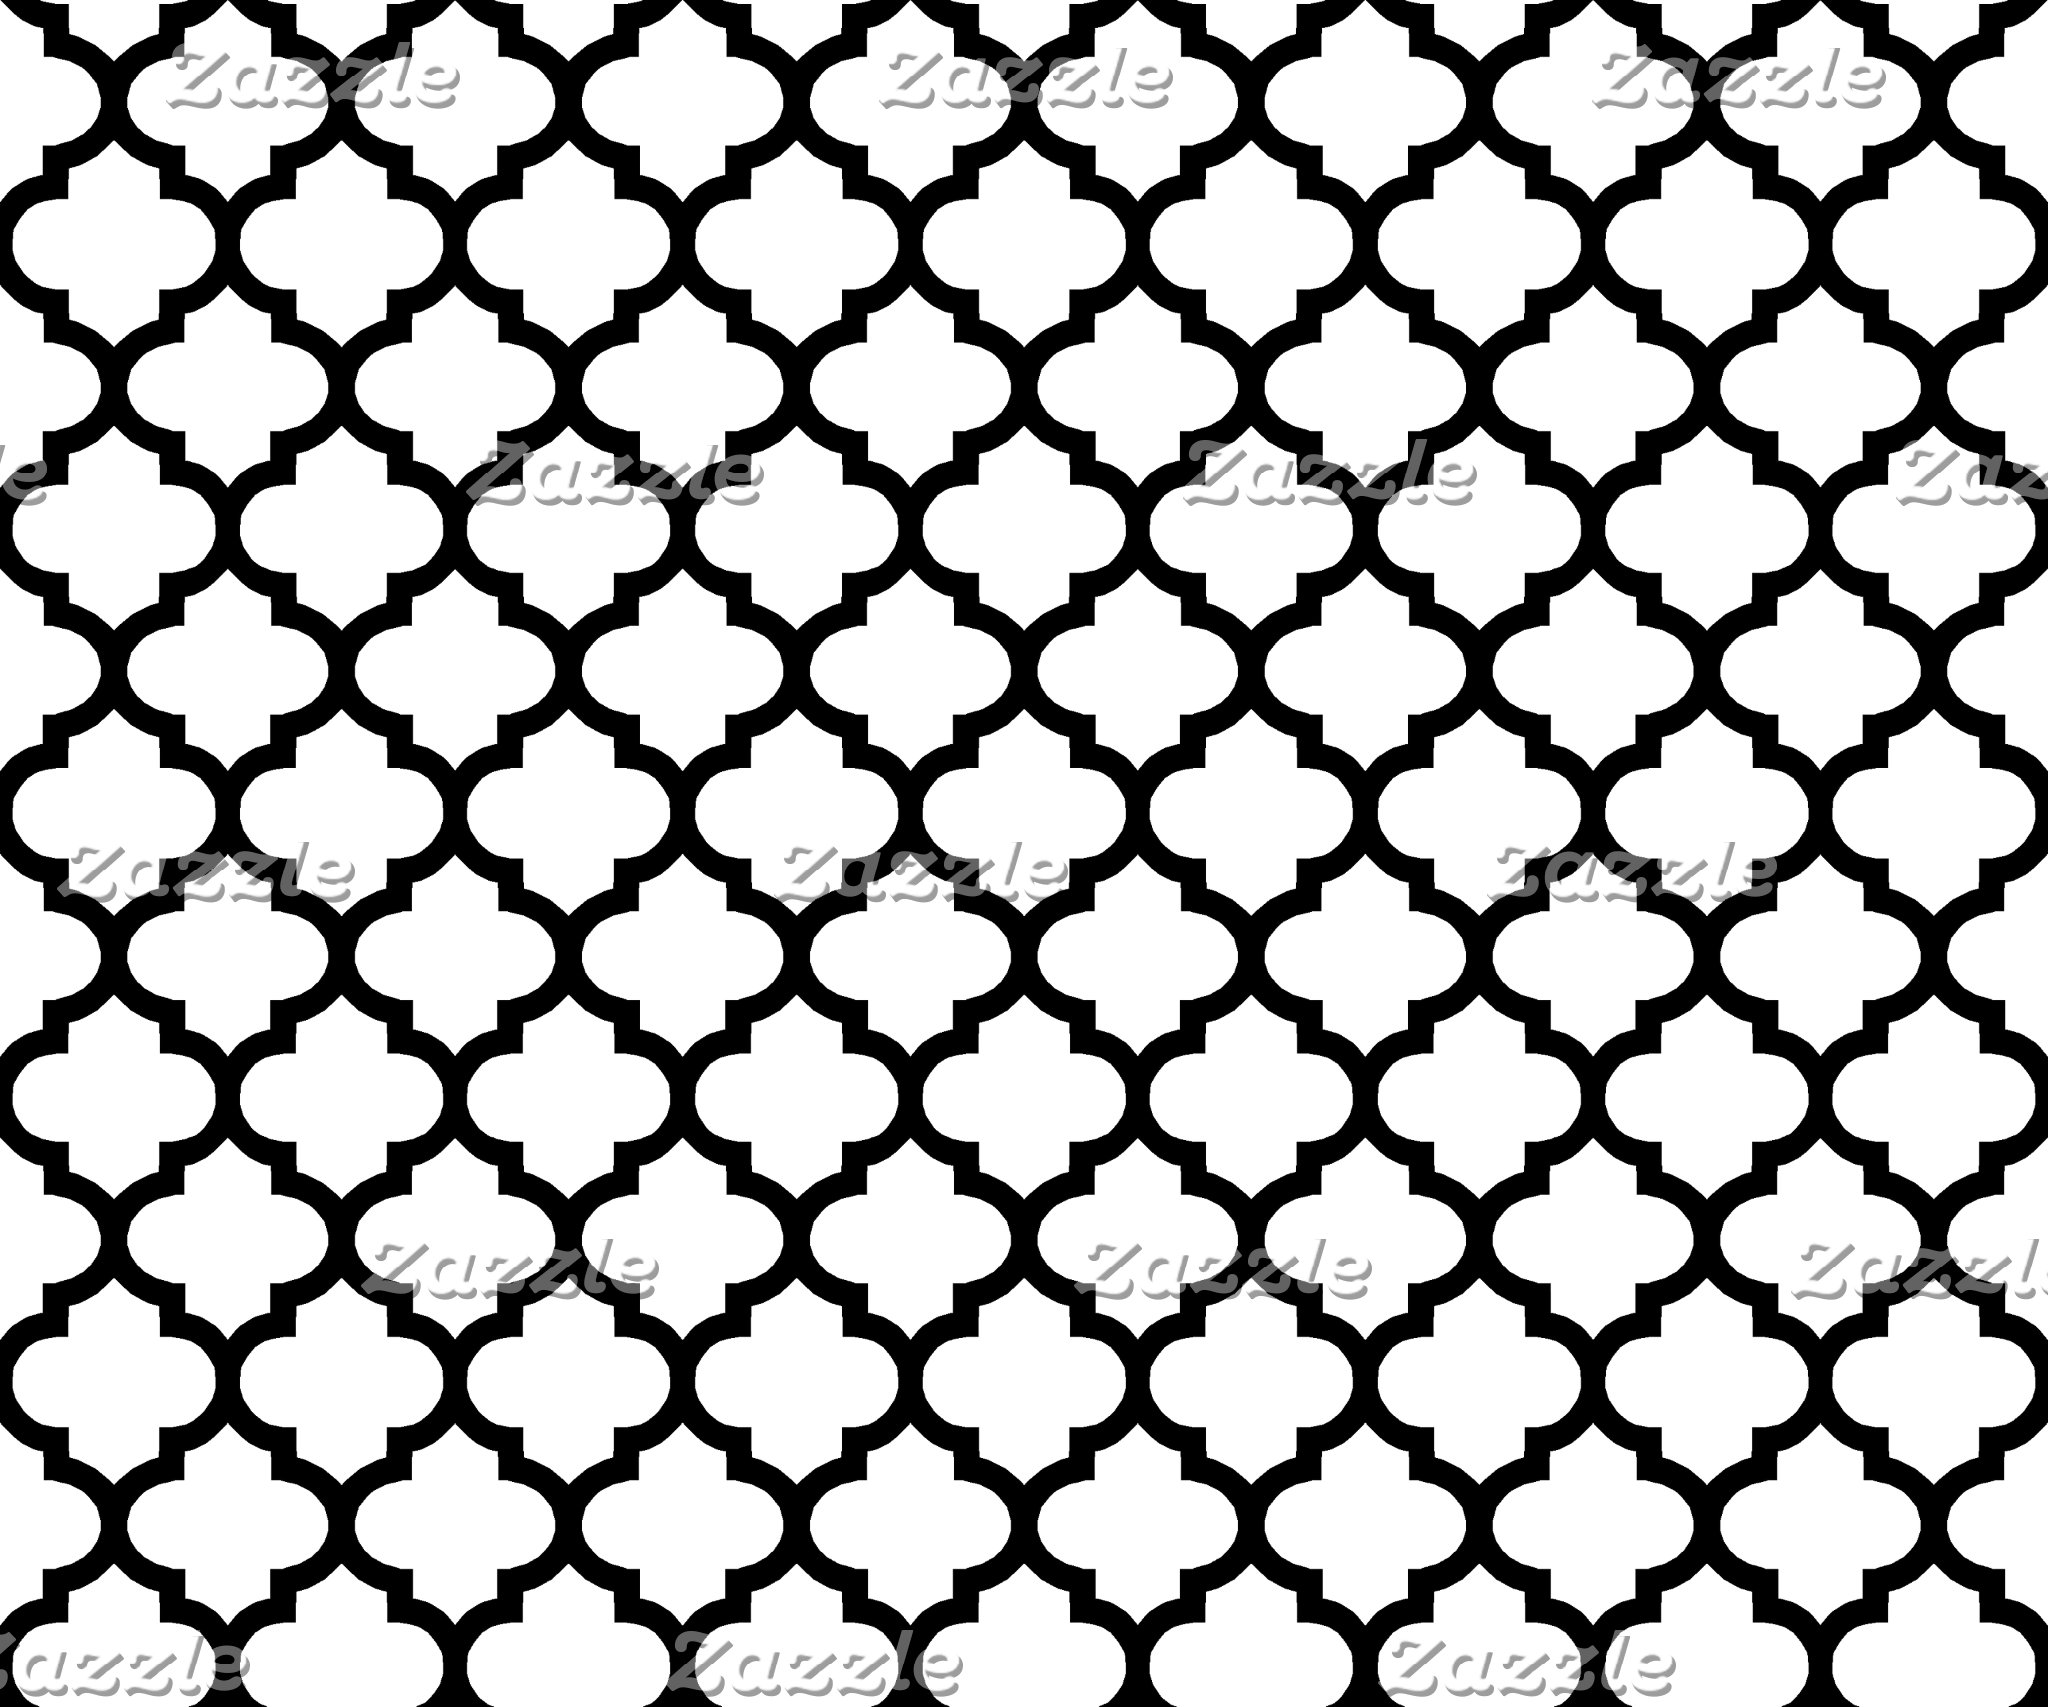 Lattice / Trellis / Quatrefoil